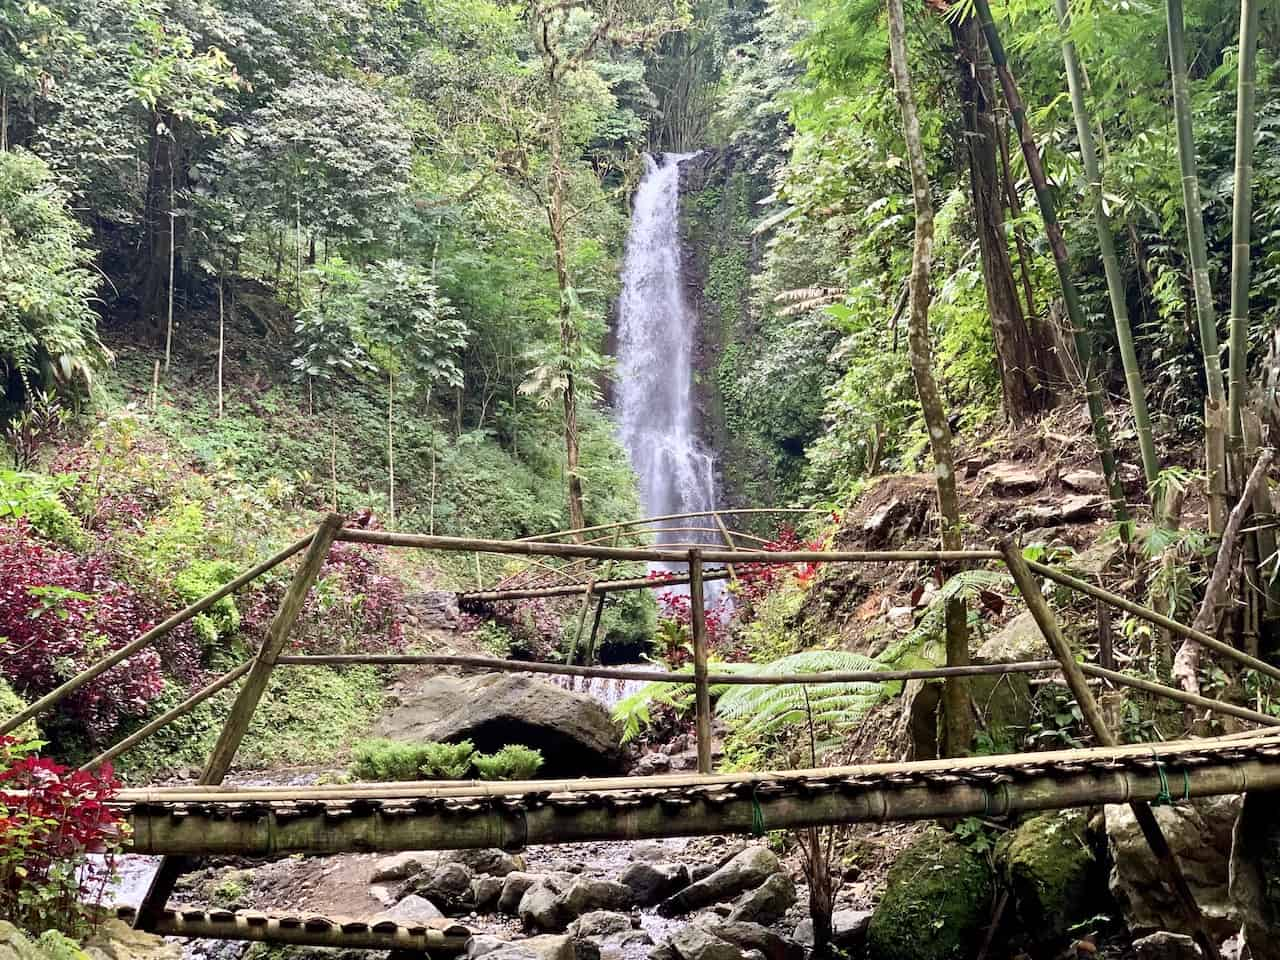 Labuhan Kebo Waterfall